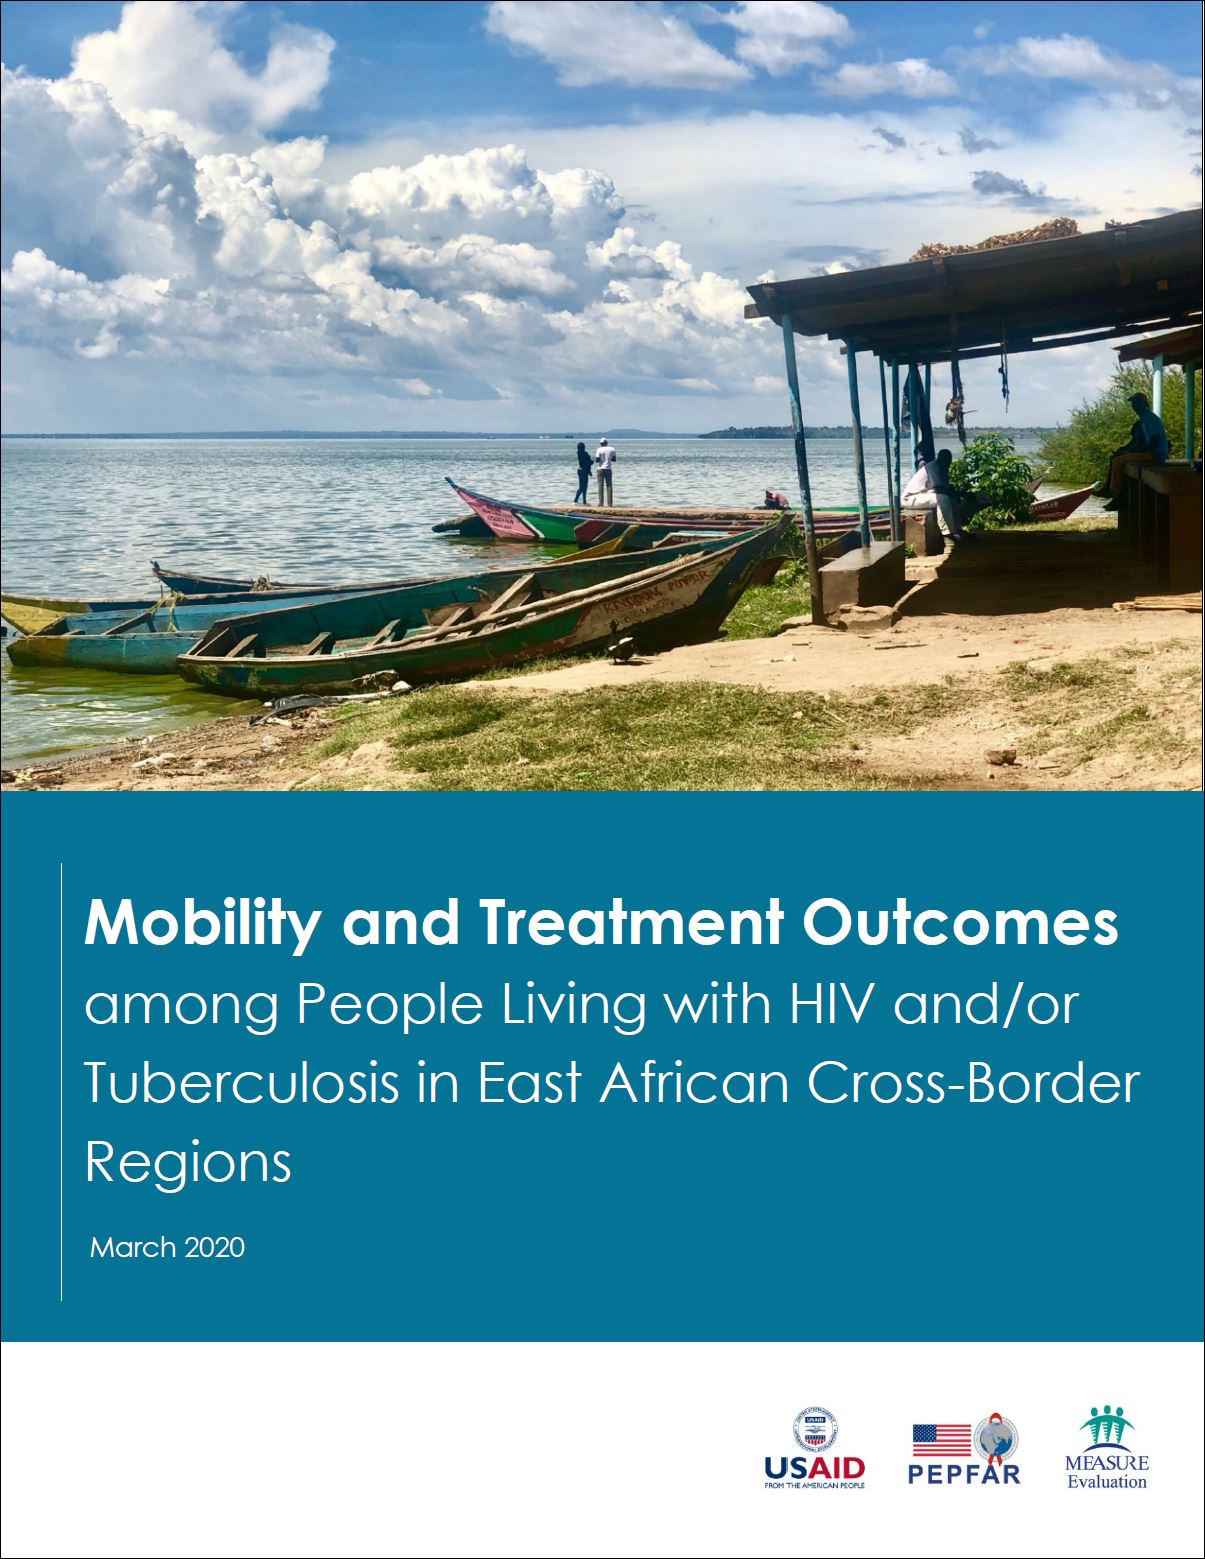 Mobility and Treatment Outcomes among People Living with HIV and/or Tuberculosis in East African Cross-Border Regions